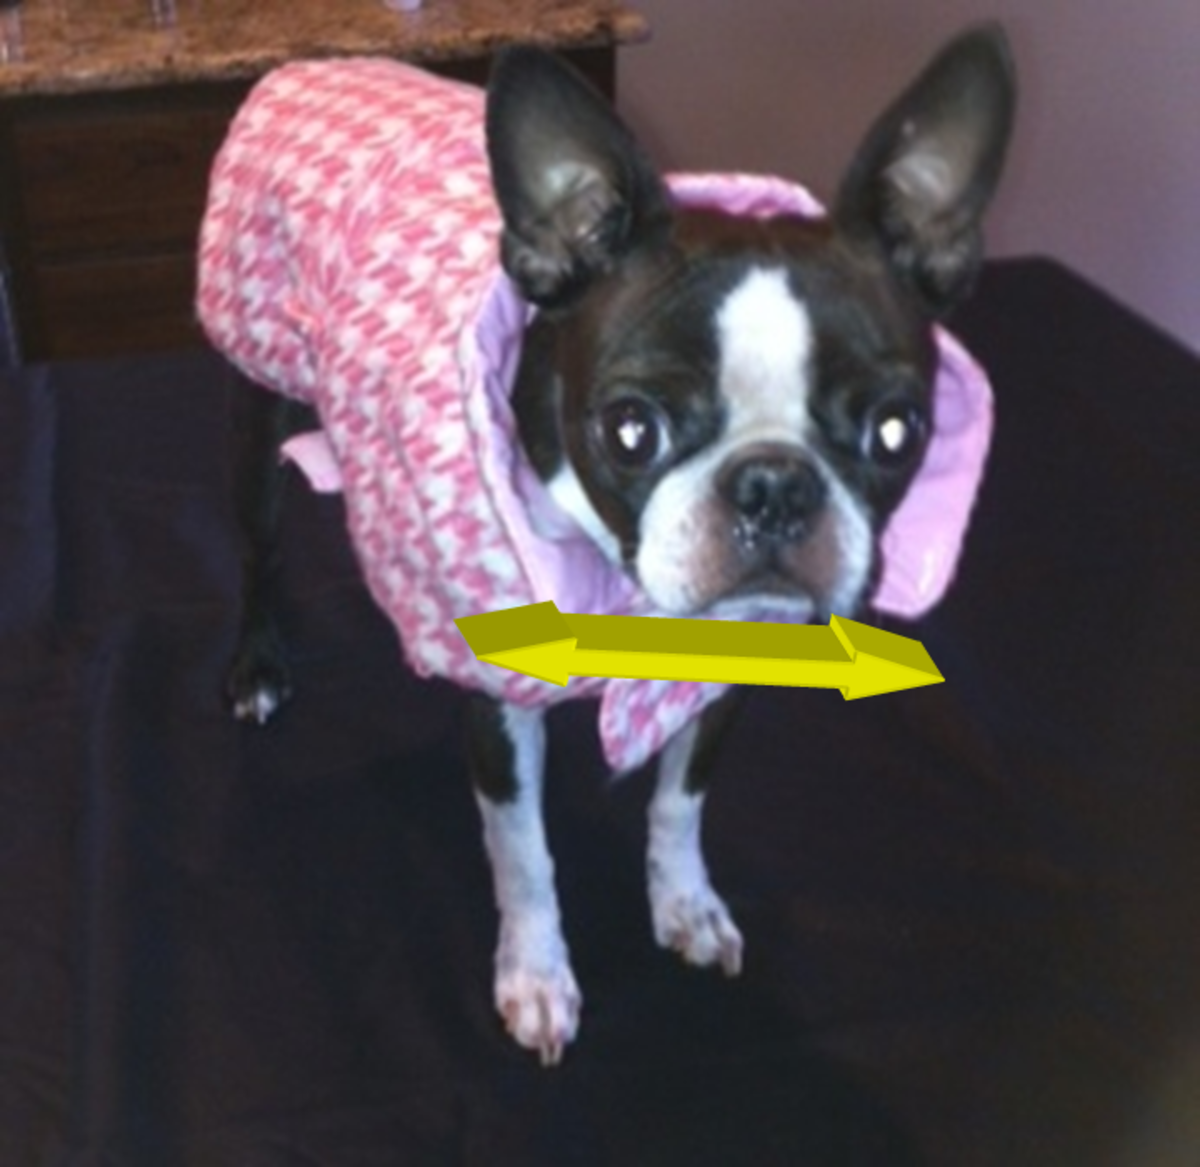 Boston terrier dogs are known for having wide chests.